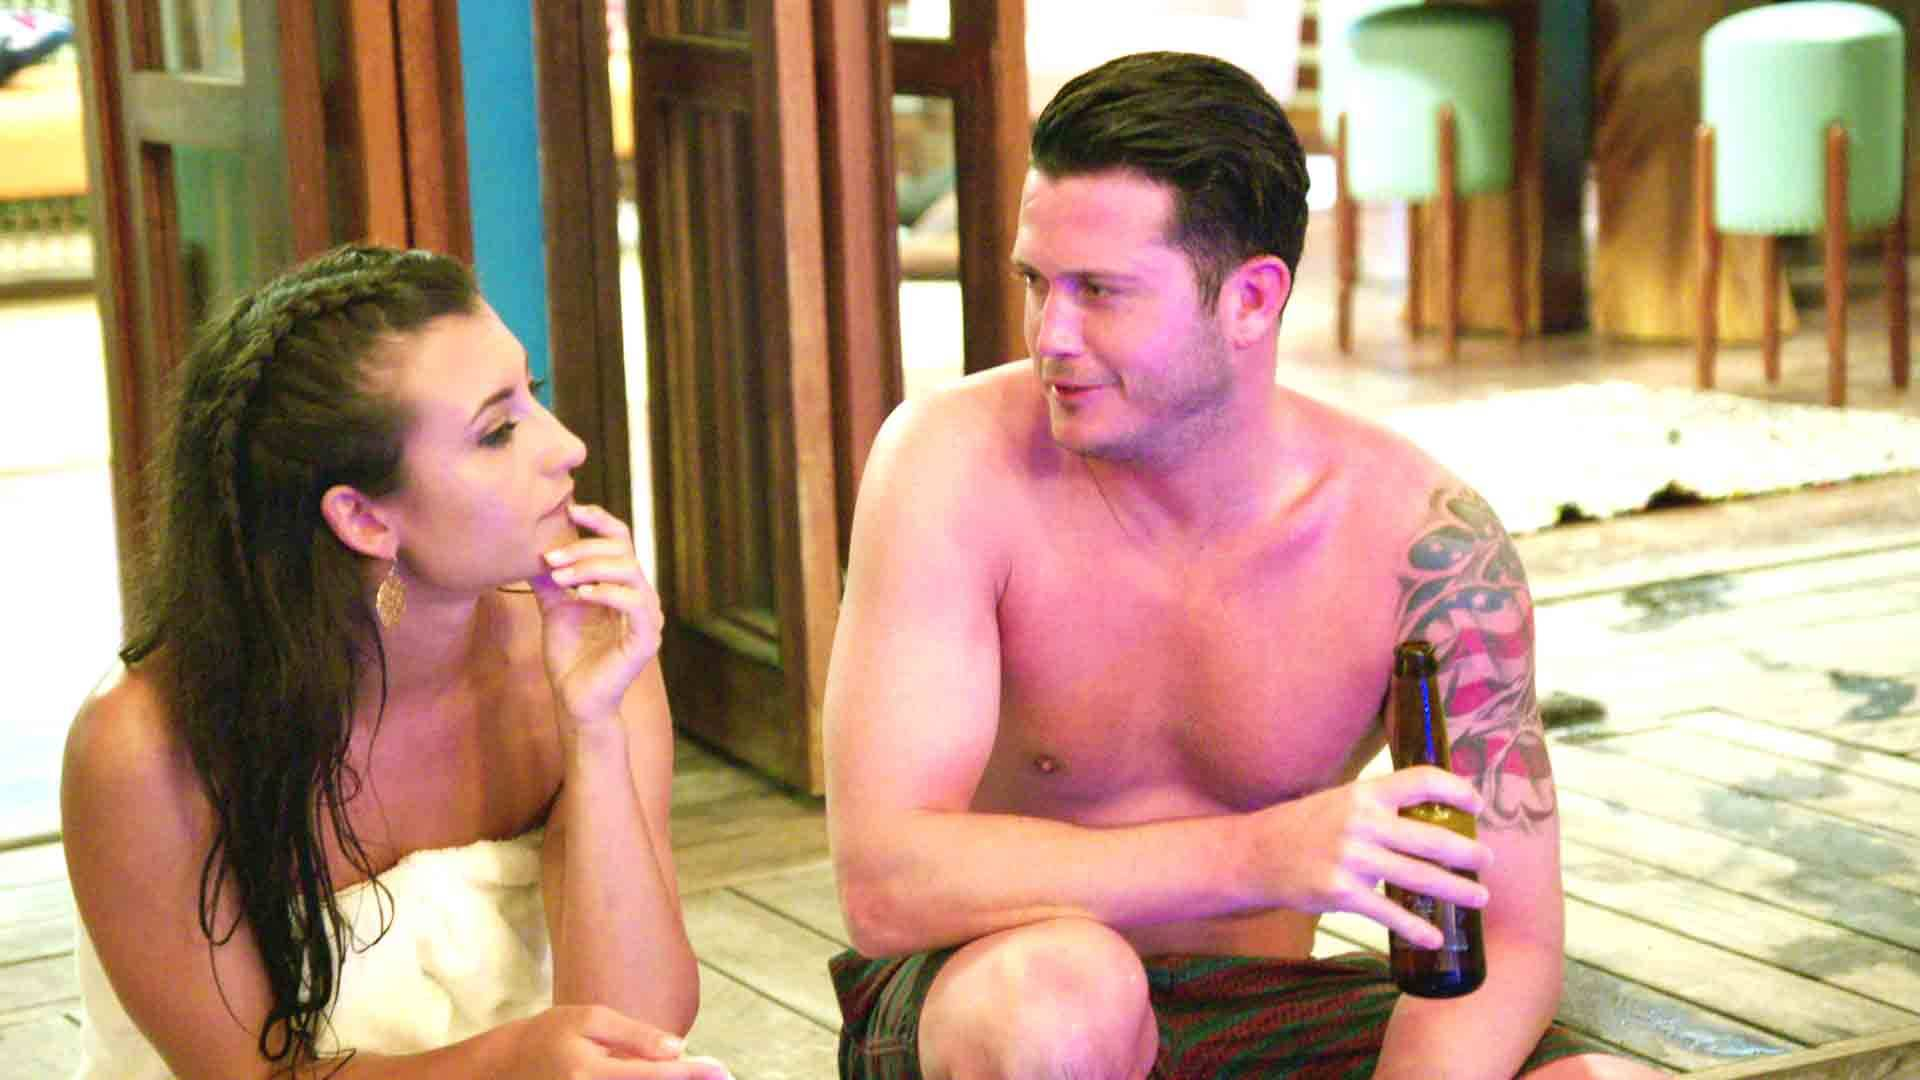 VH1 orders up Naked Dating series